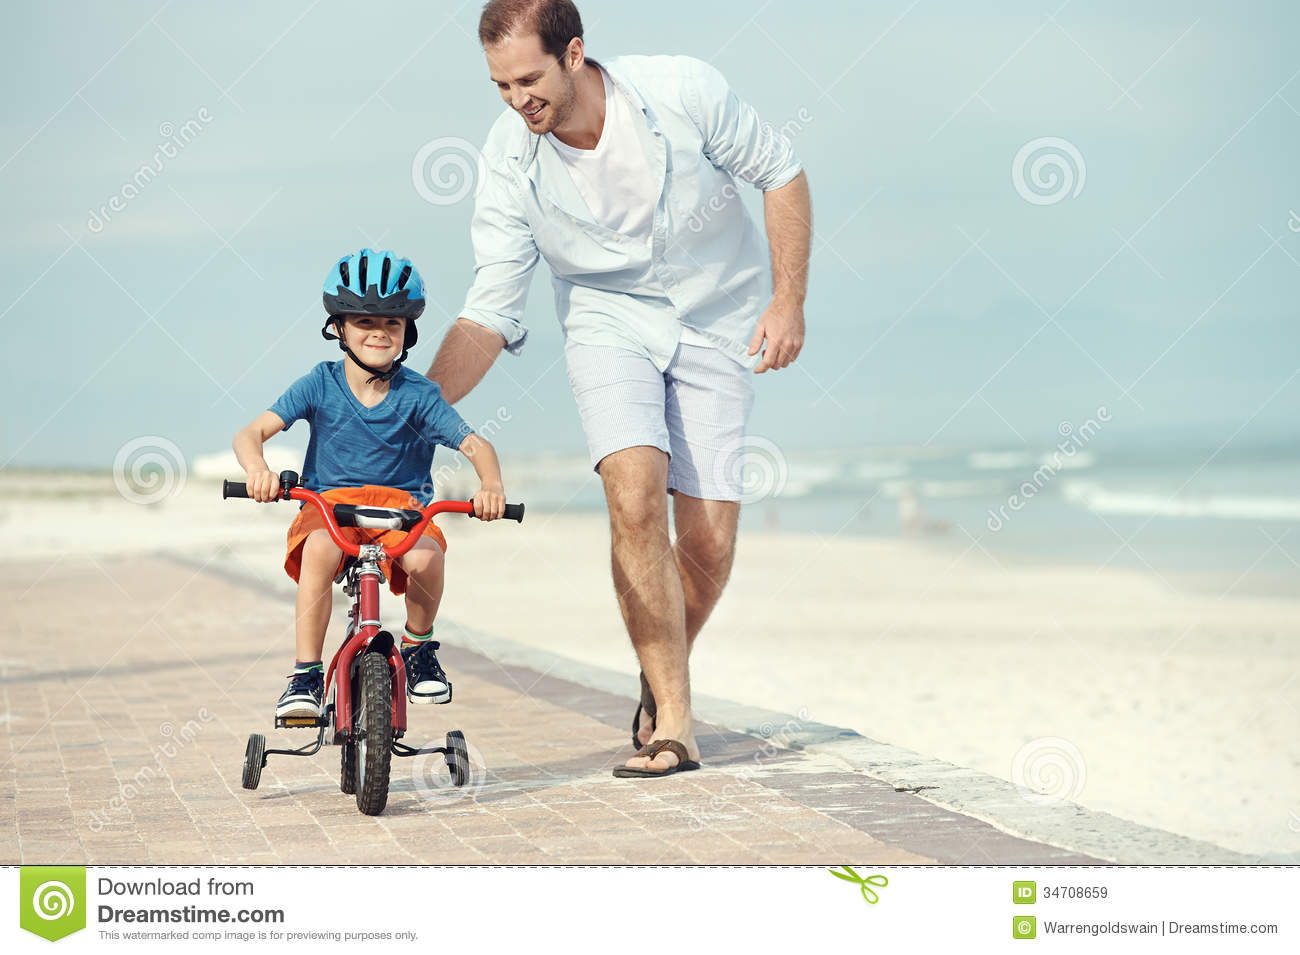 Essay about bicycle safety